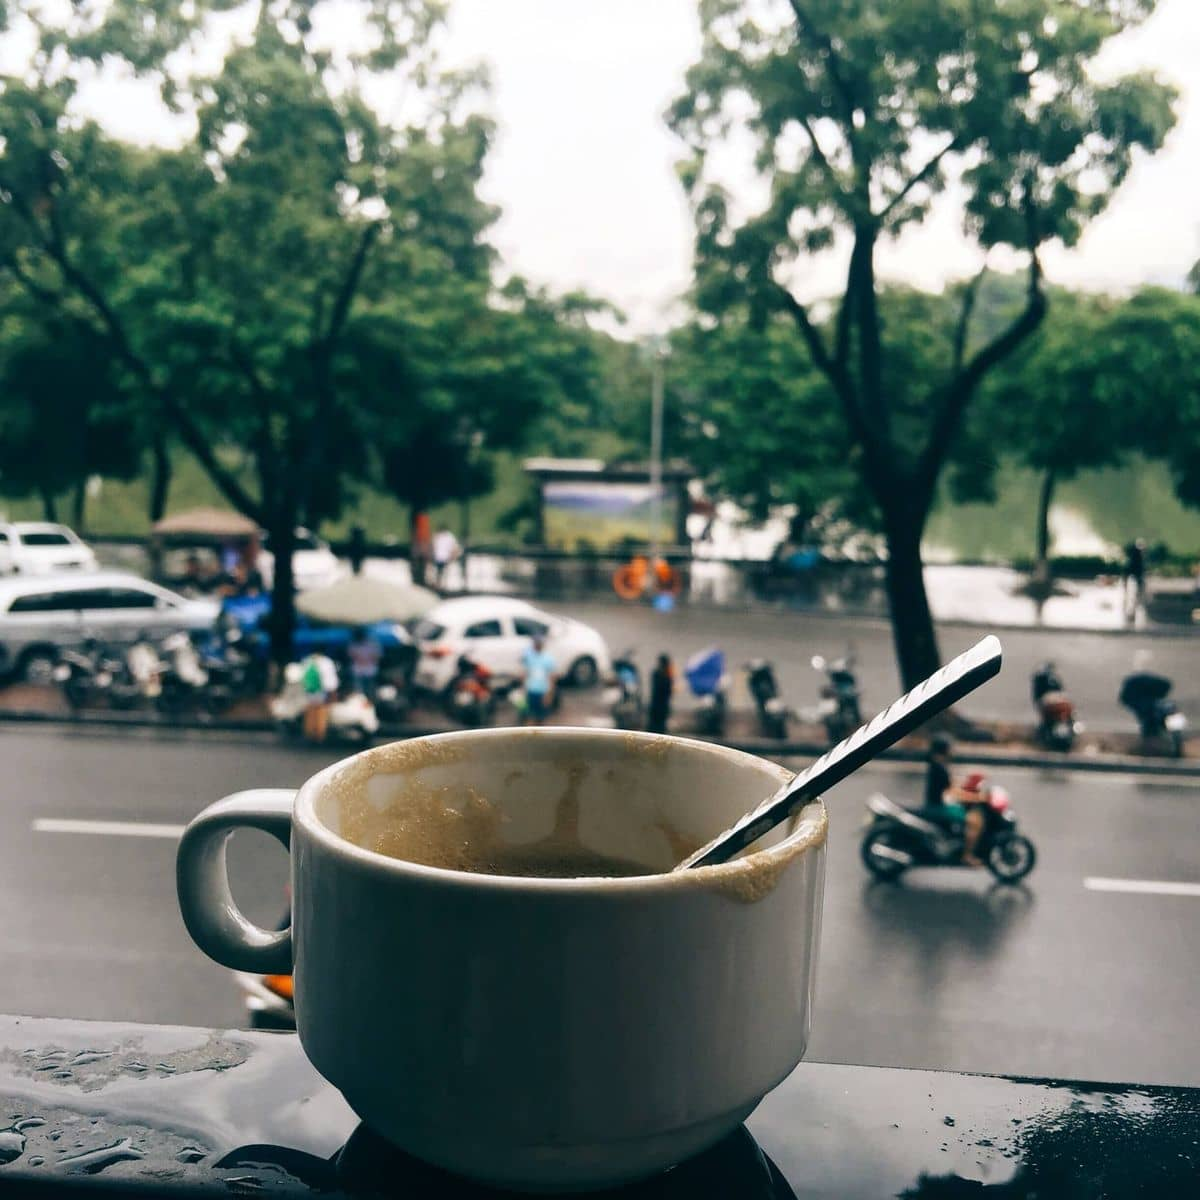 Hanoi one day tour: trying out egg coffee is a must